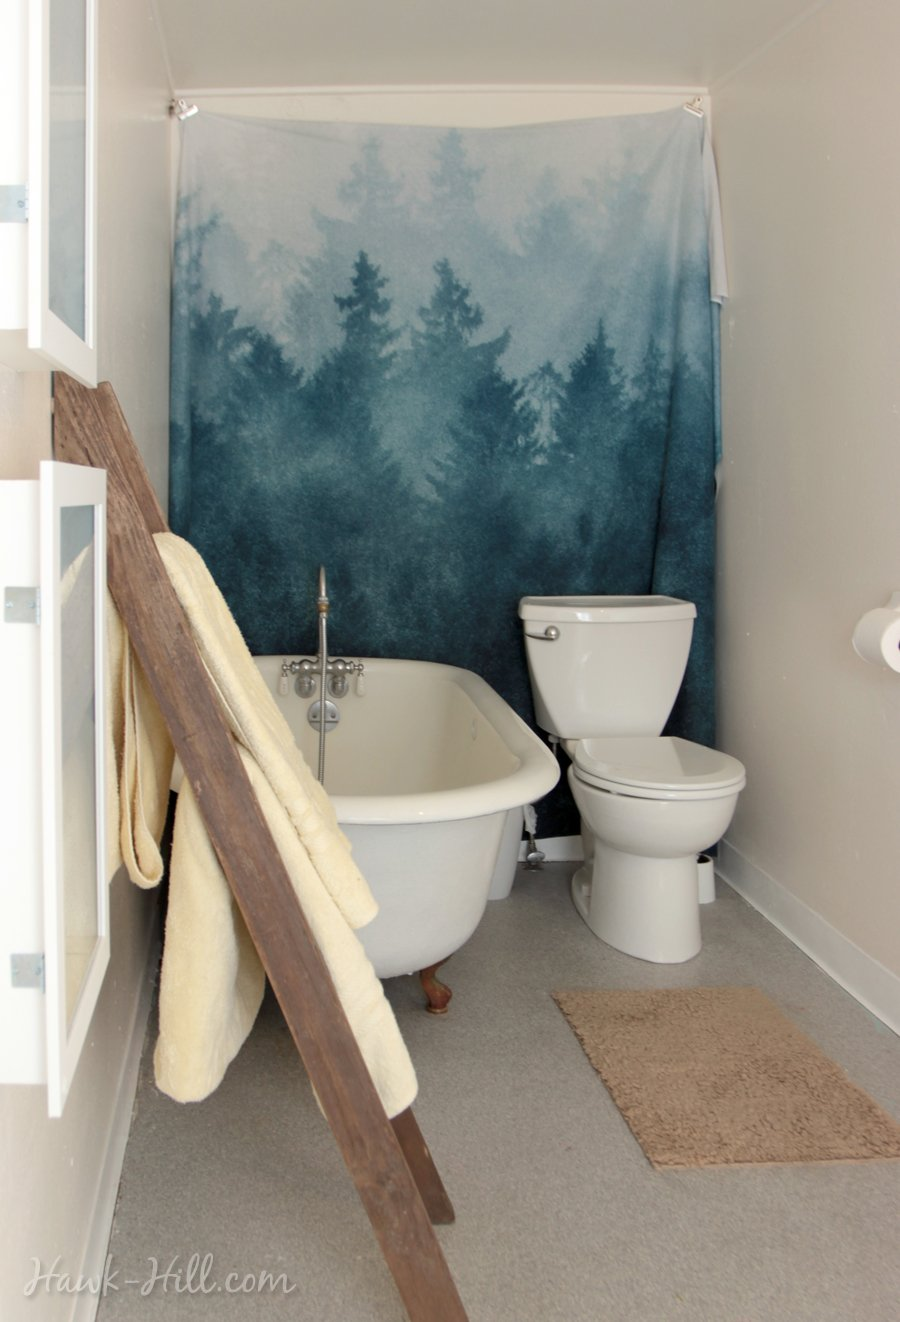 Big Bathroom in Tiny Seattle Apartment with Clawfoot Tub